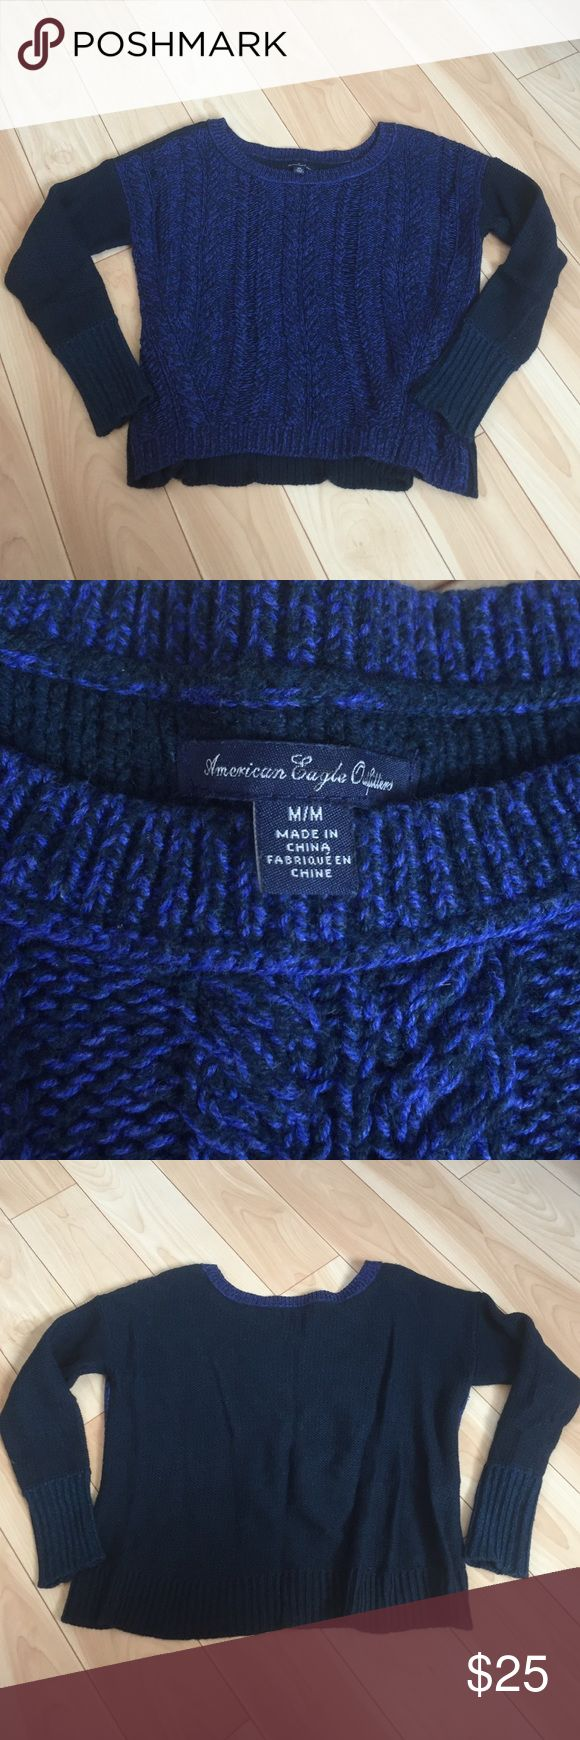 American Eagle size M knit sweater ❄️ Gently used and still in excellent condition. Blue knit sweater from American eagle size medium. American Eagle Outfitters Sweaters Crew & Scoop Necks